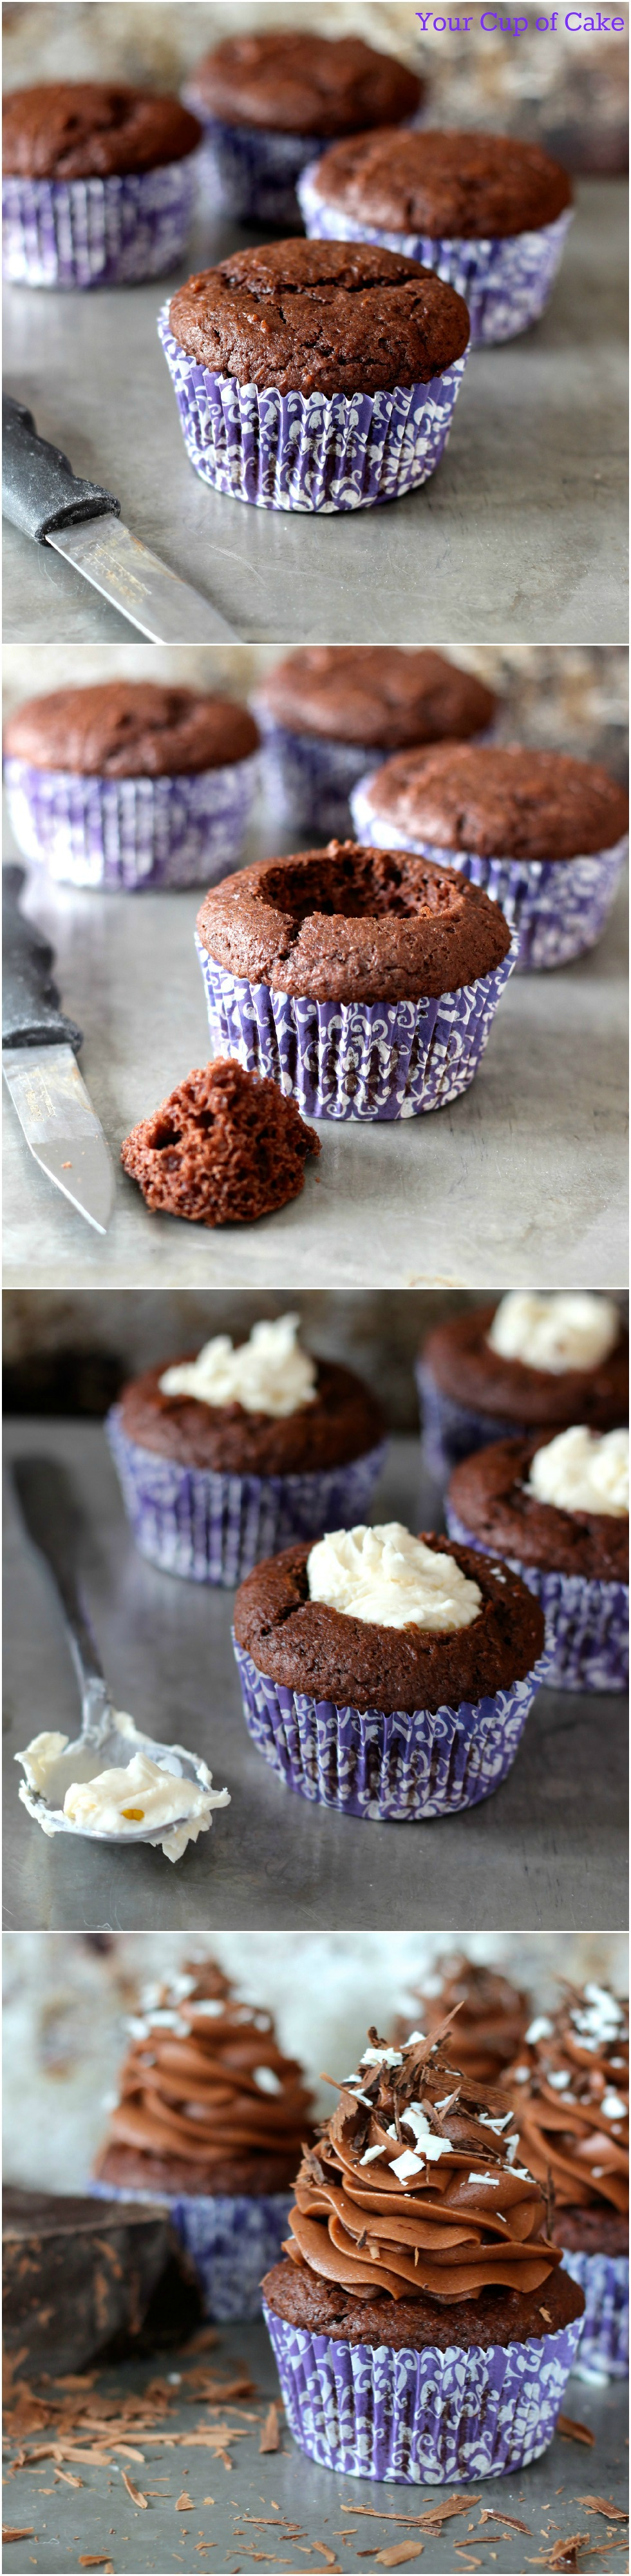 Cupcakes will filled with sweet mascarpone